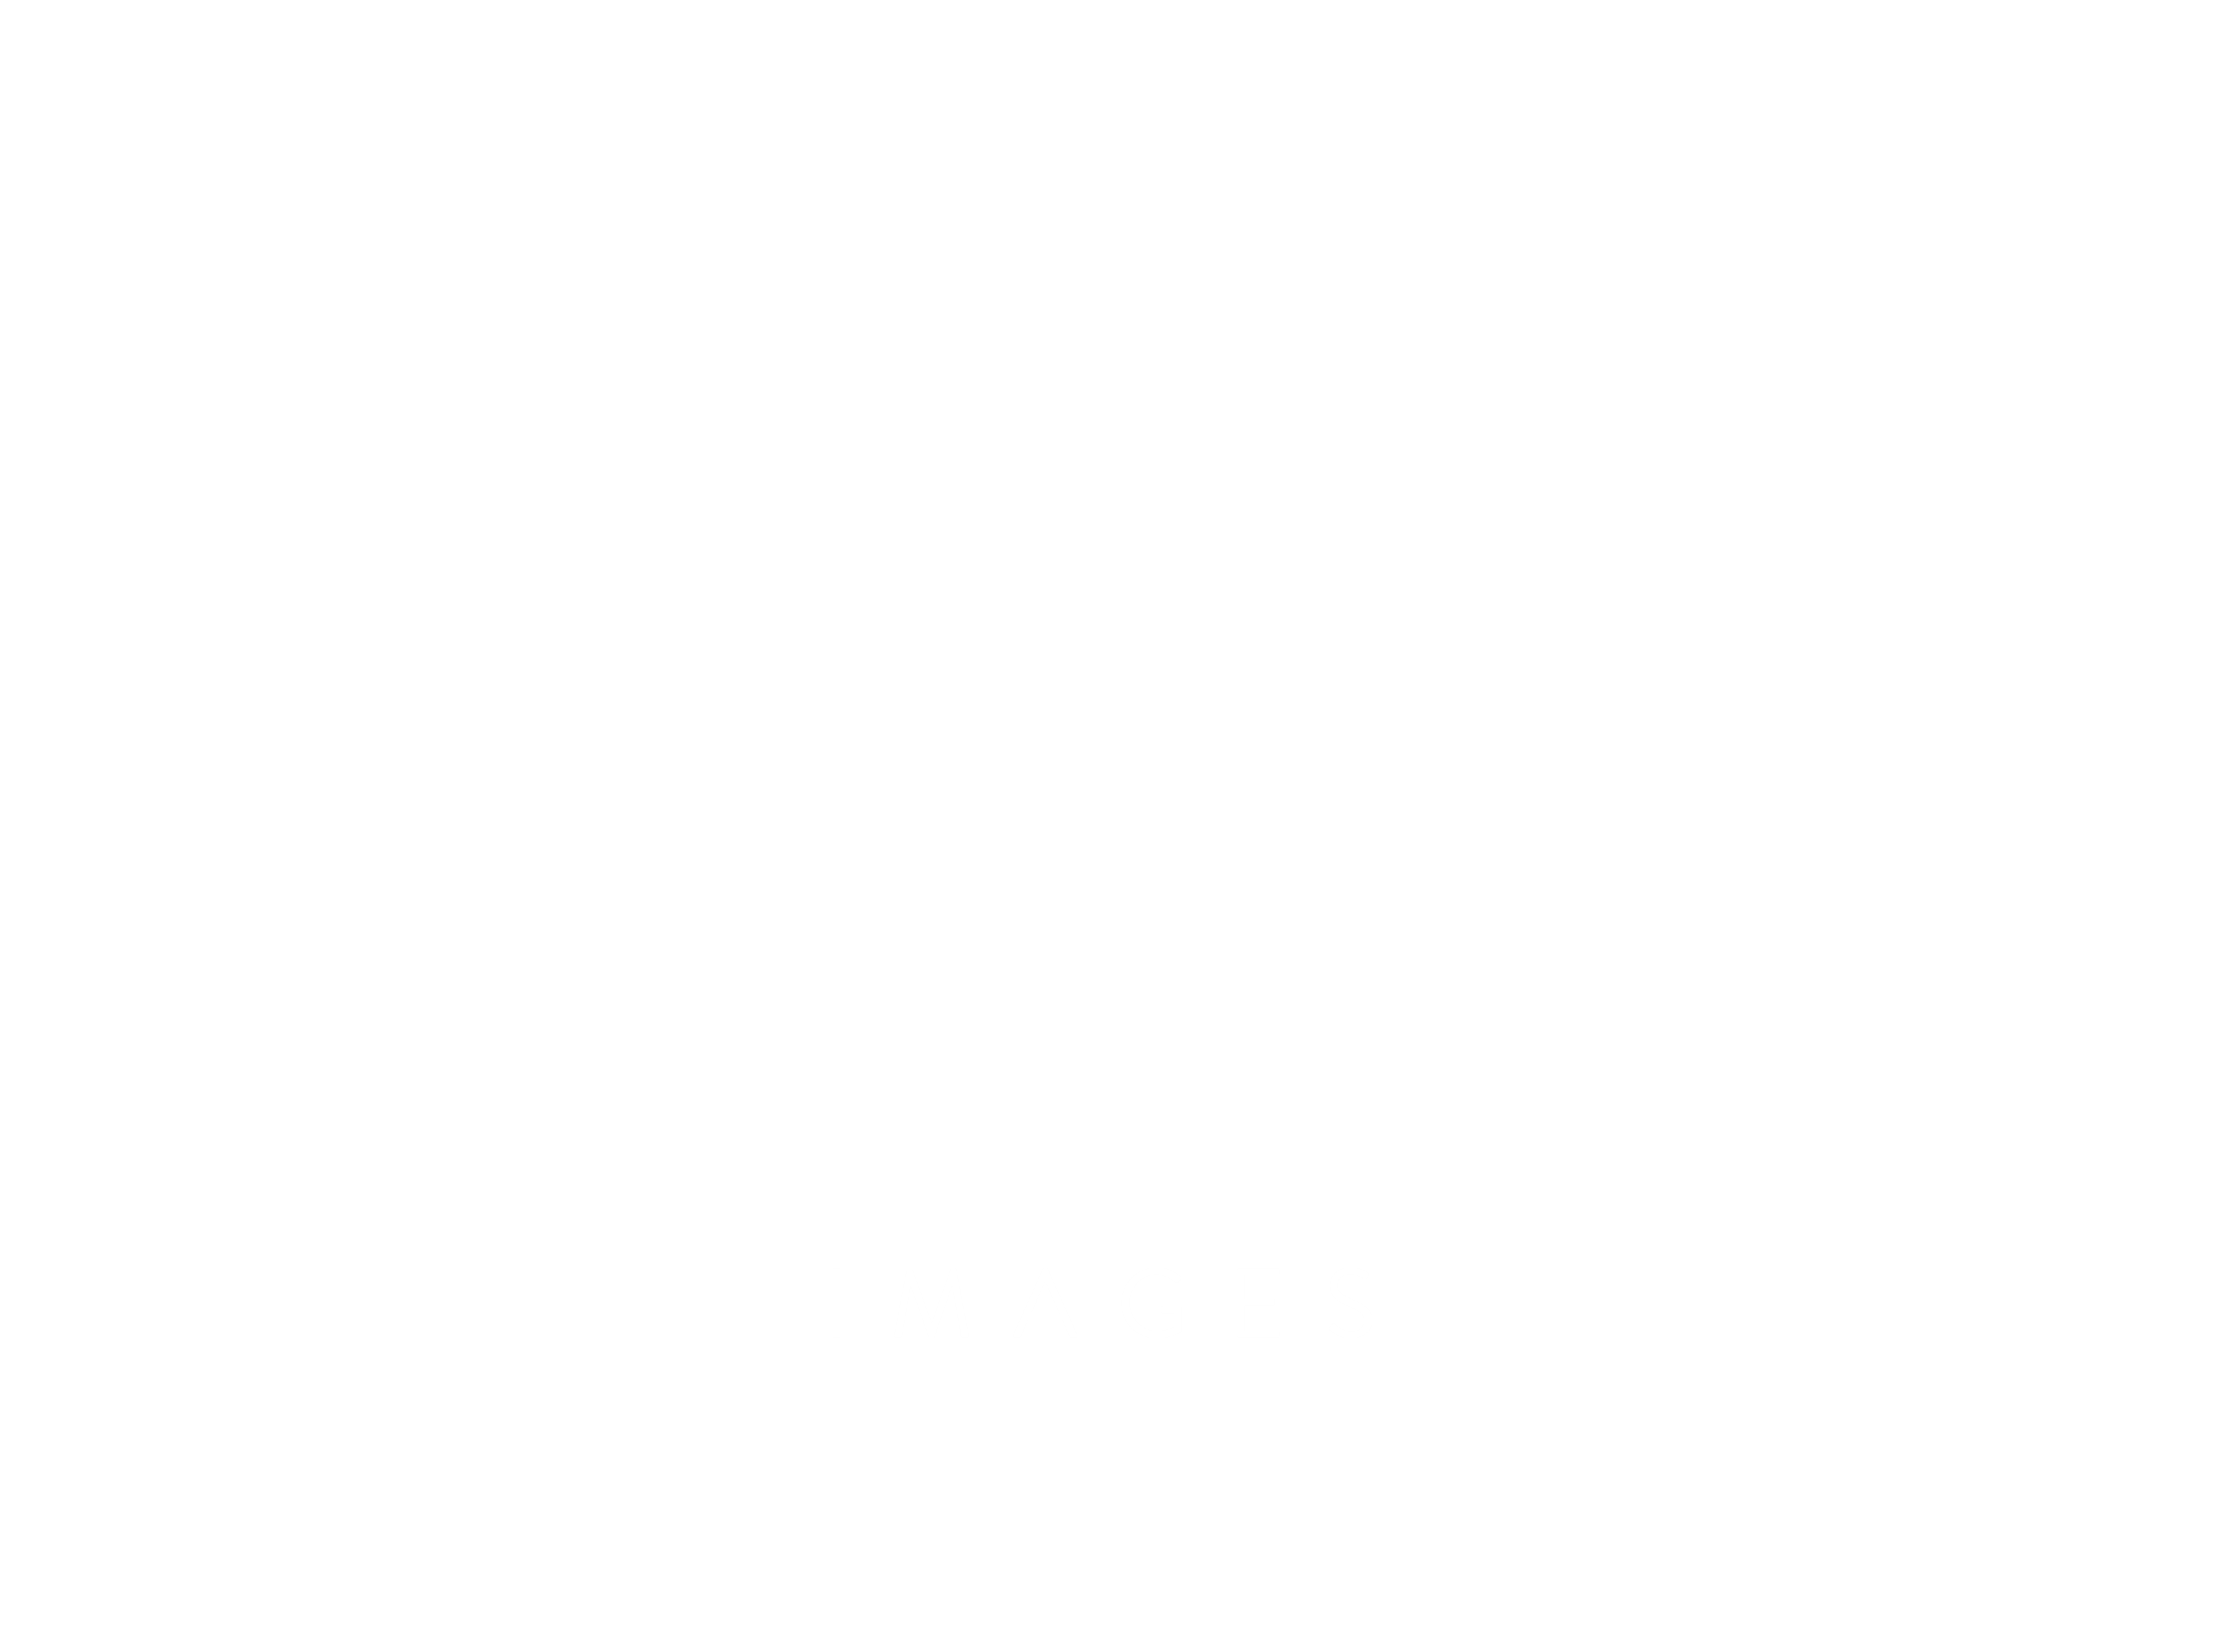 White Images